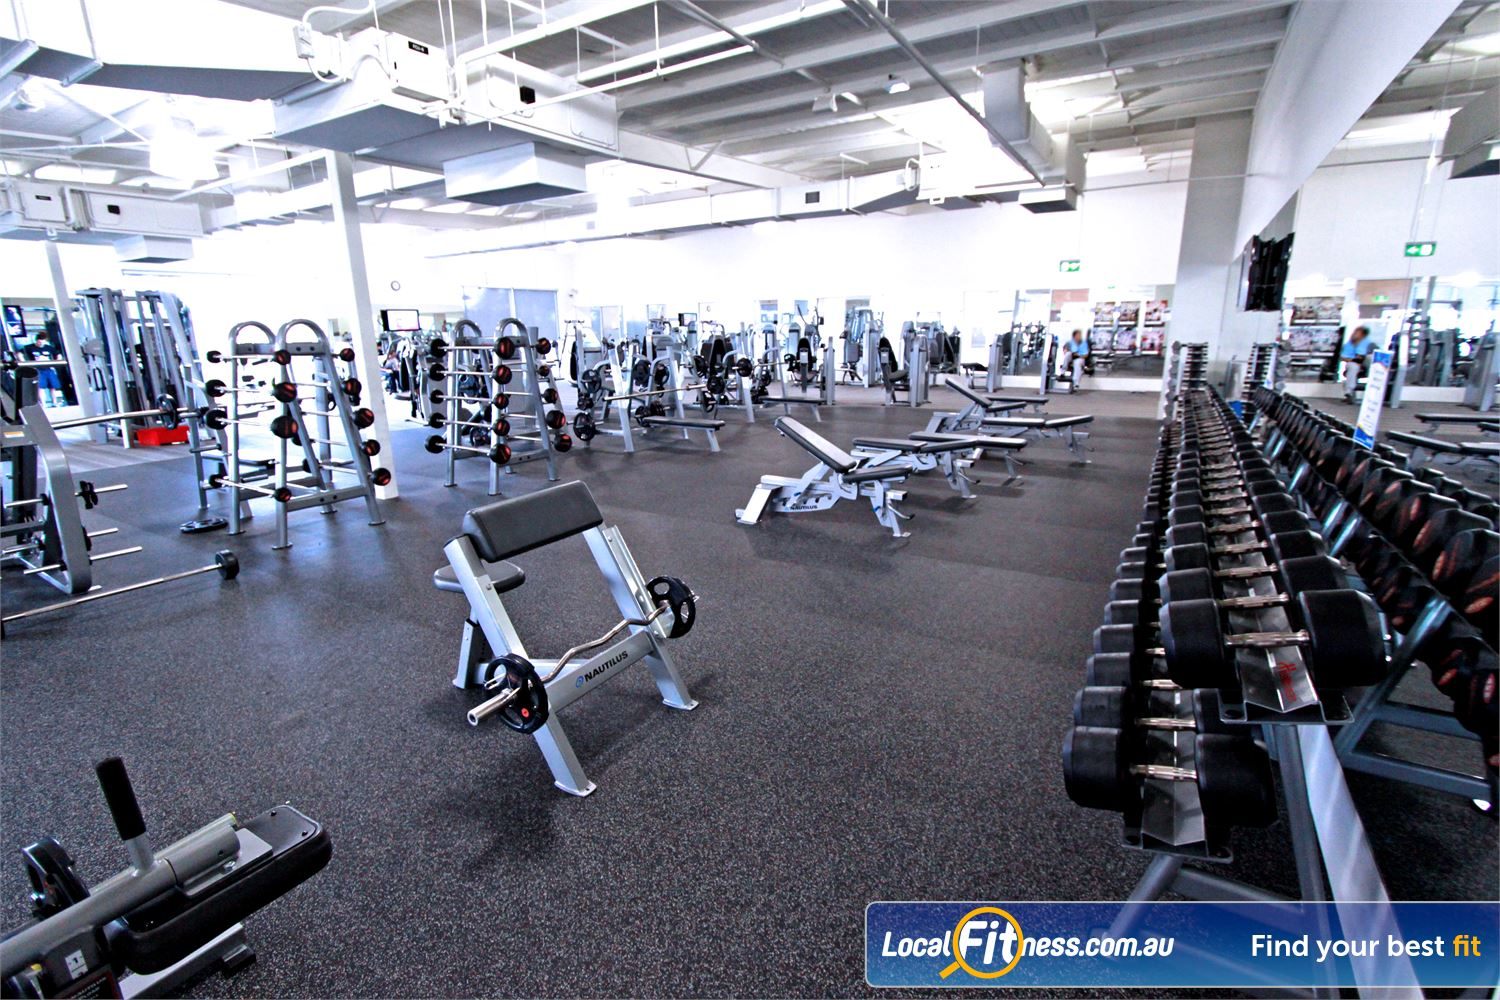 Genesis Fitness Clubs Near Watsonia North Our Bundoora gym provides a fully equipped free-weights area for strength.